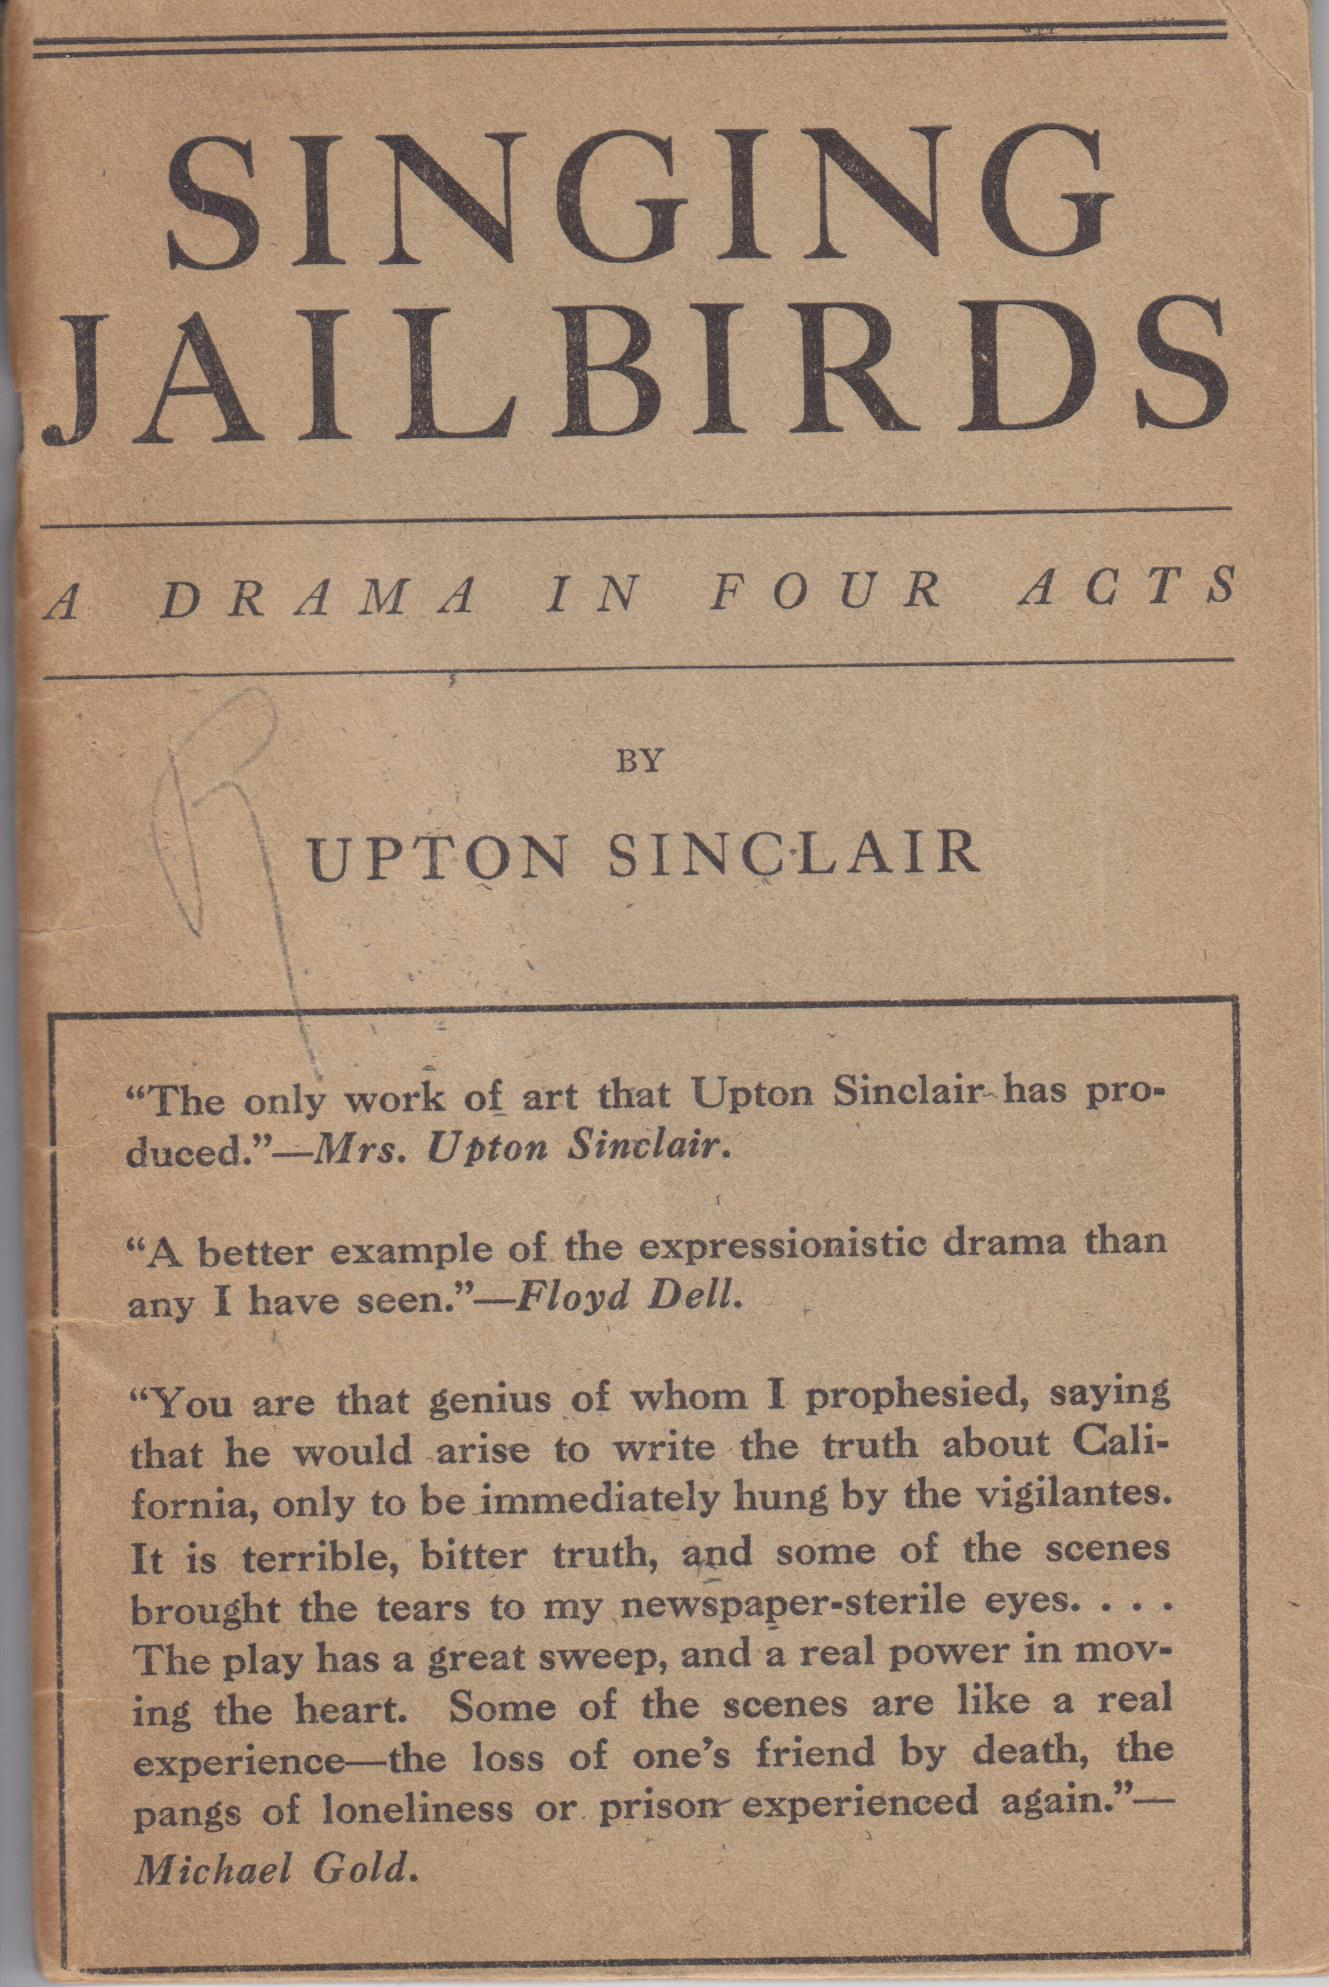 Image for Singing Jailbirds. a Drama in Four Acts